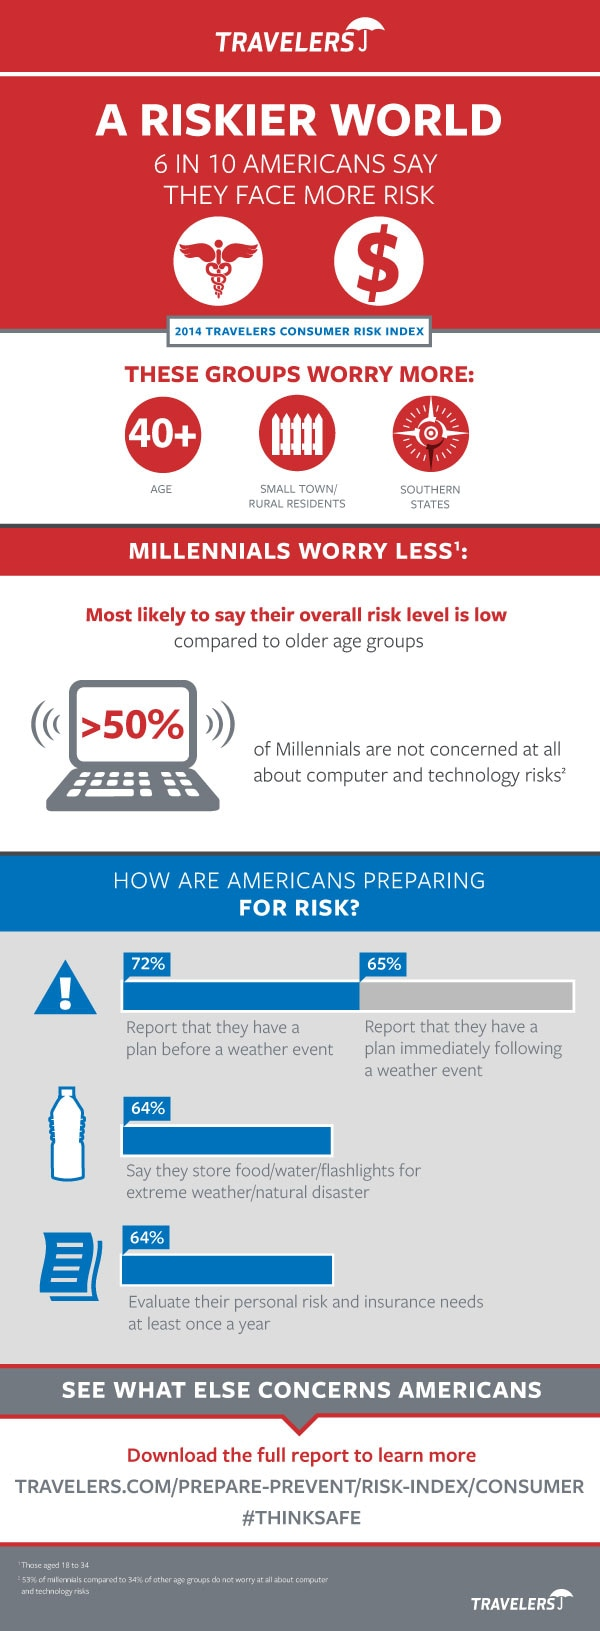 Top Risks infographic from 2014 Consumer Risk Index